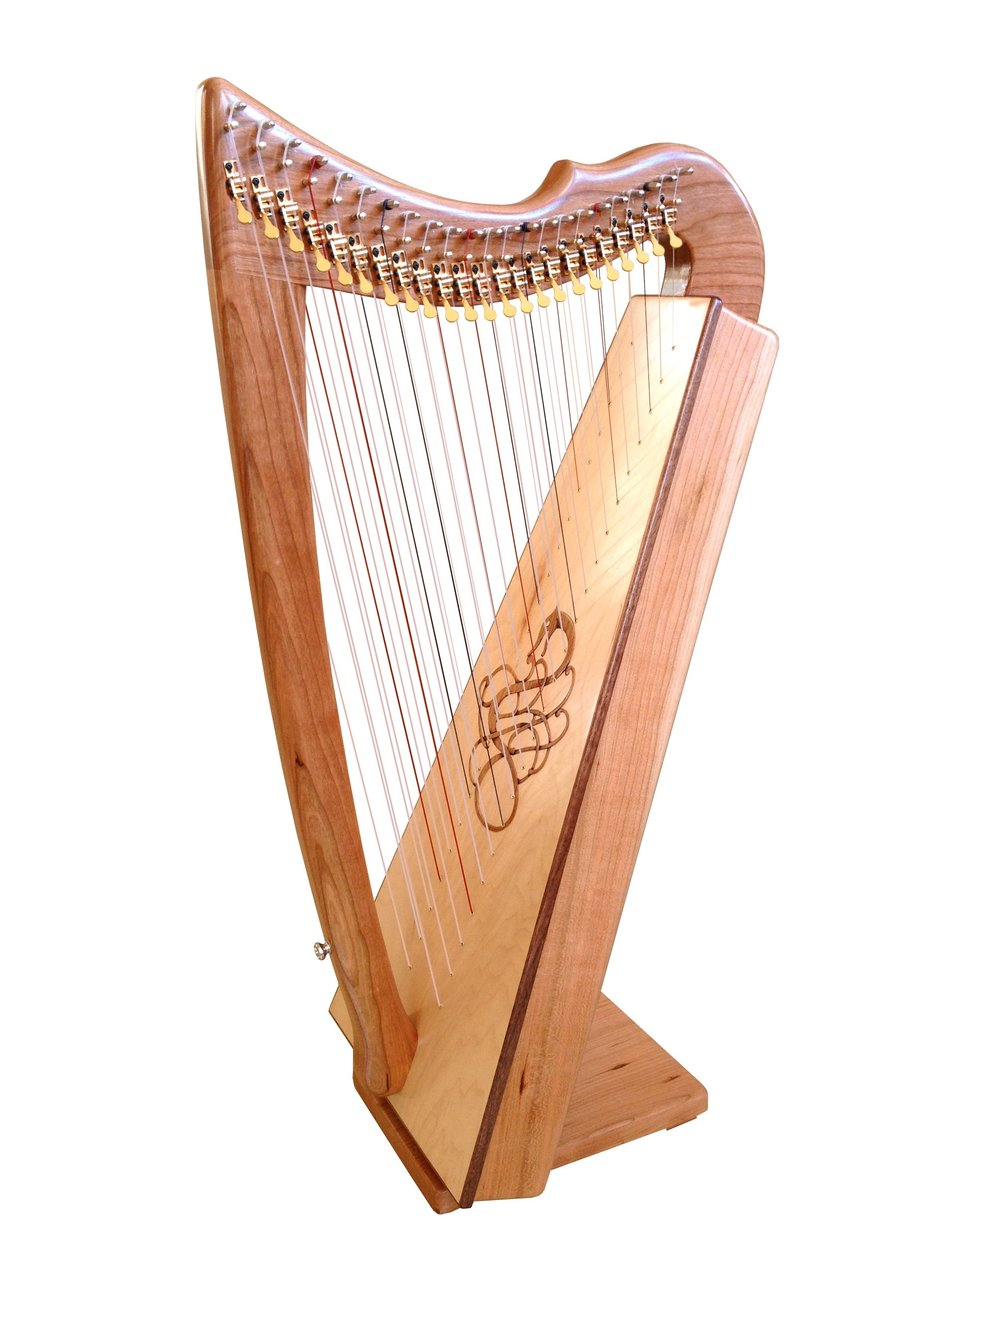 Rees Double Morgan Meadow Concert Line Harp in Cherry with optional Singing Serpent ornamentation in cherry. [Note:  this harp is shown with full Truitt sharping instead of the standard Rees sharping.]